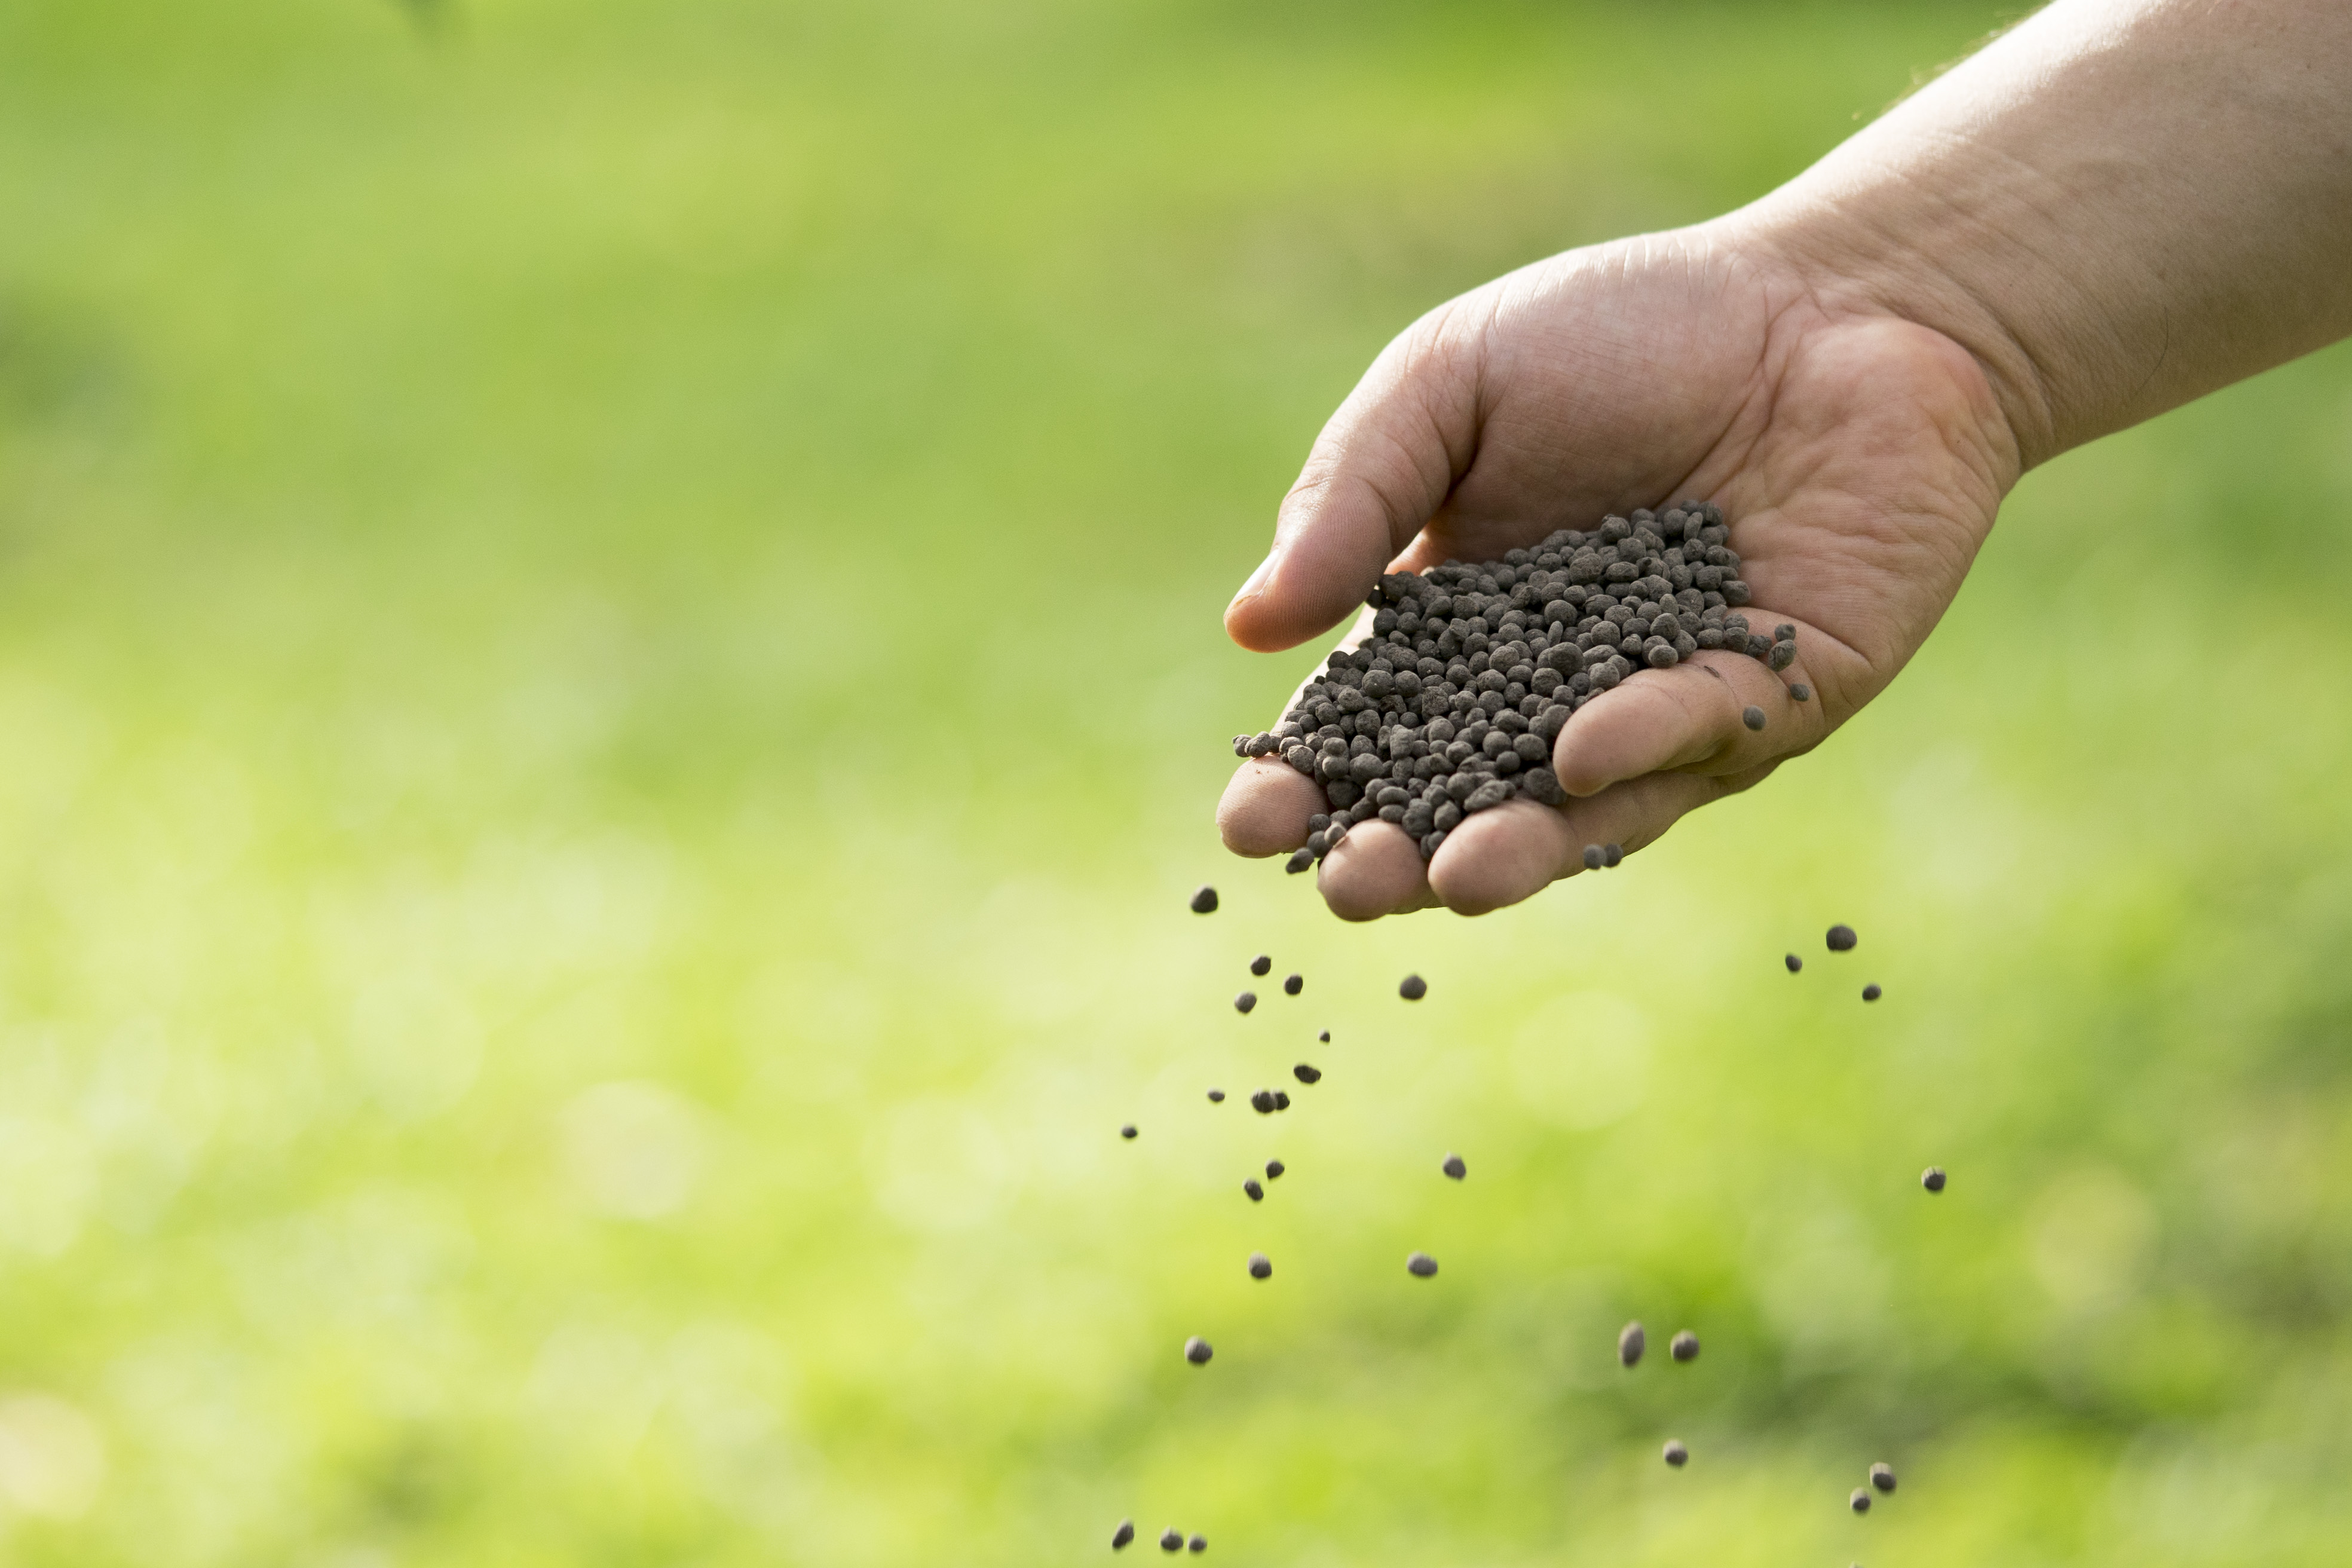 Homemade Nitrogen Fertilizer